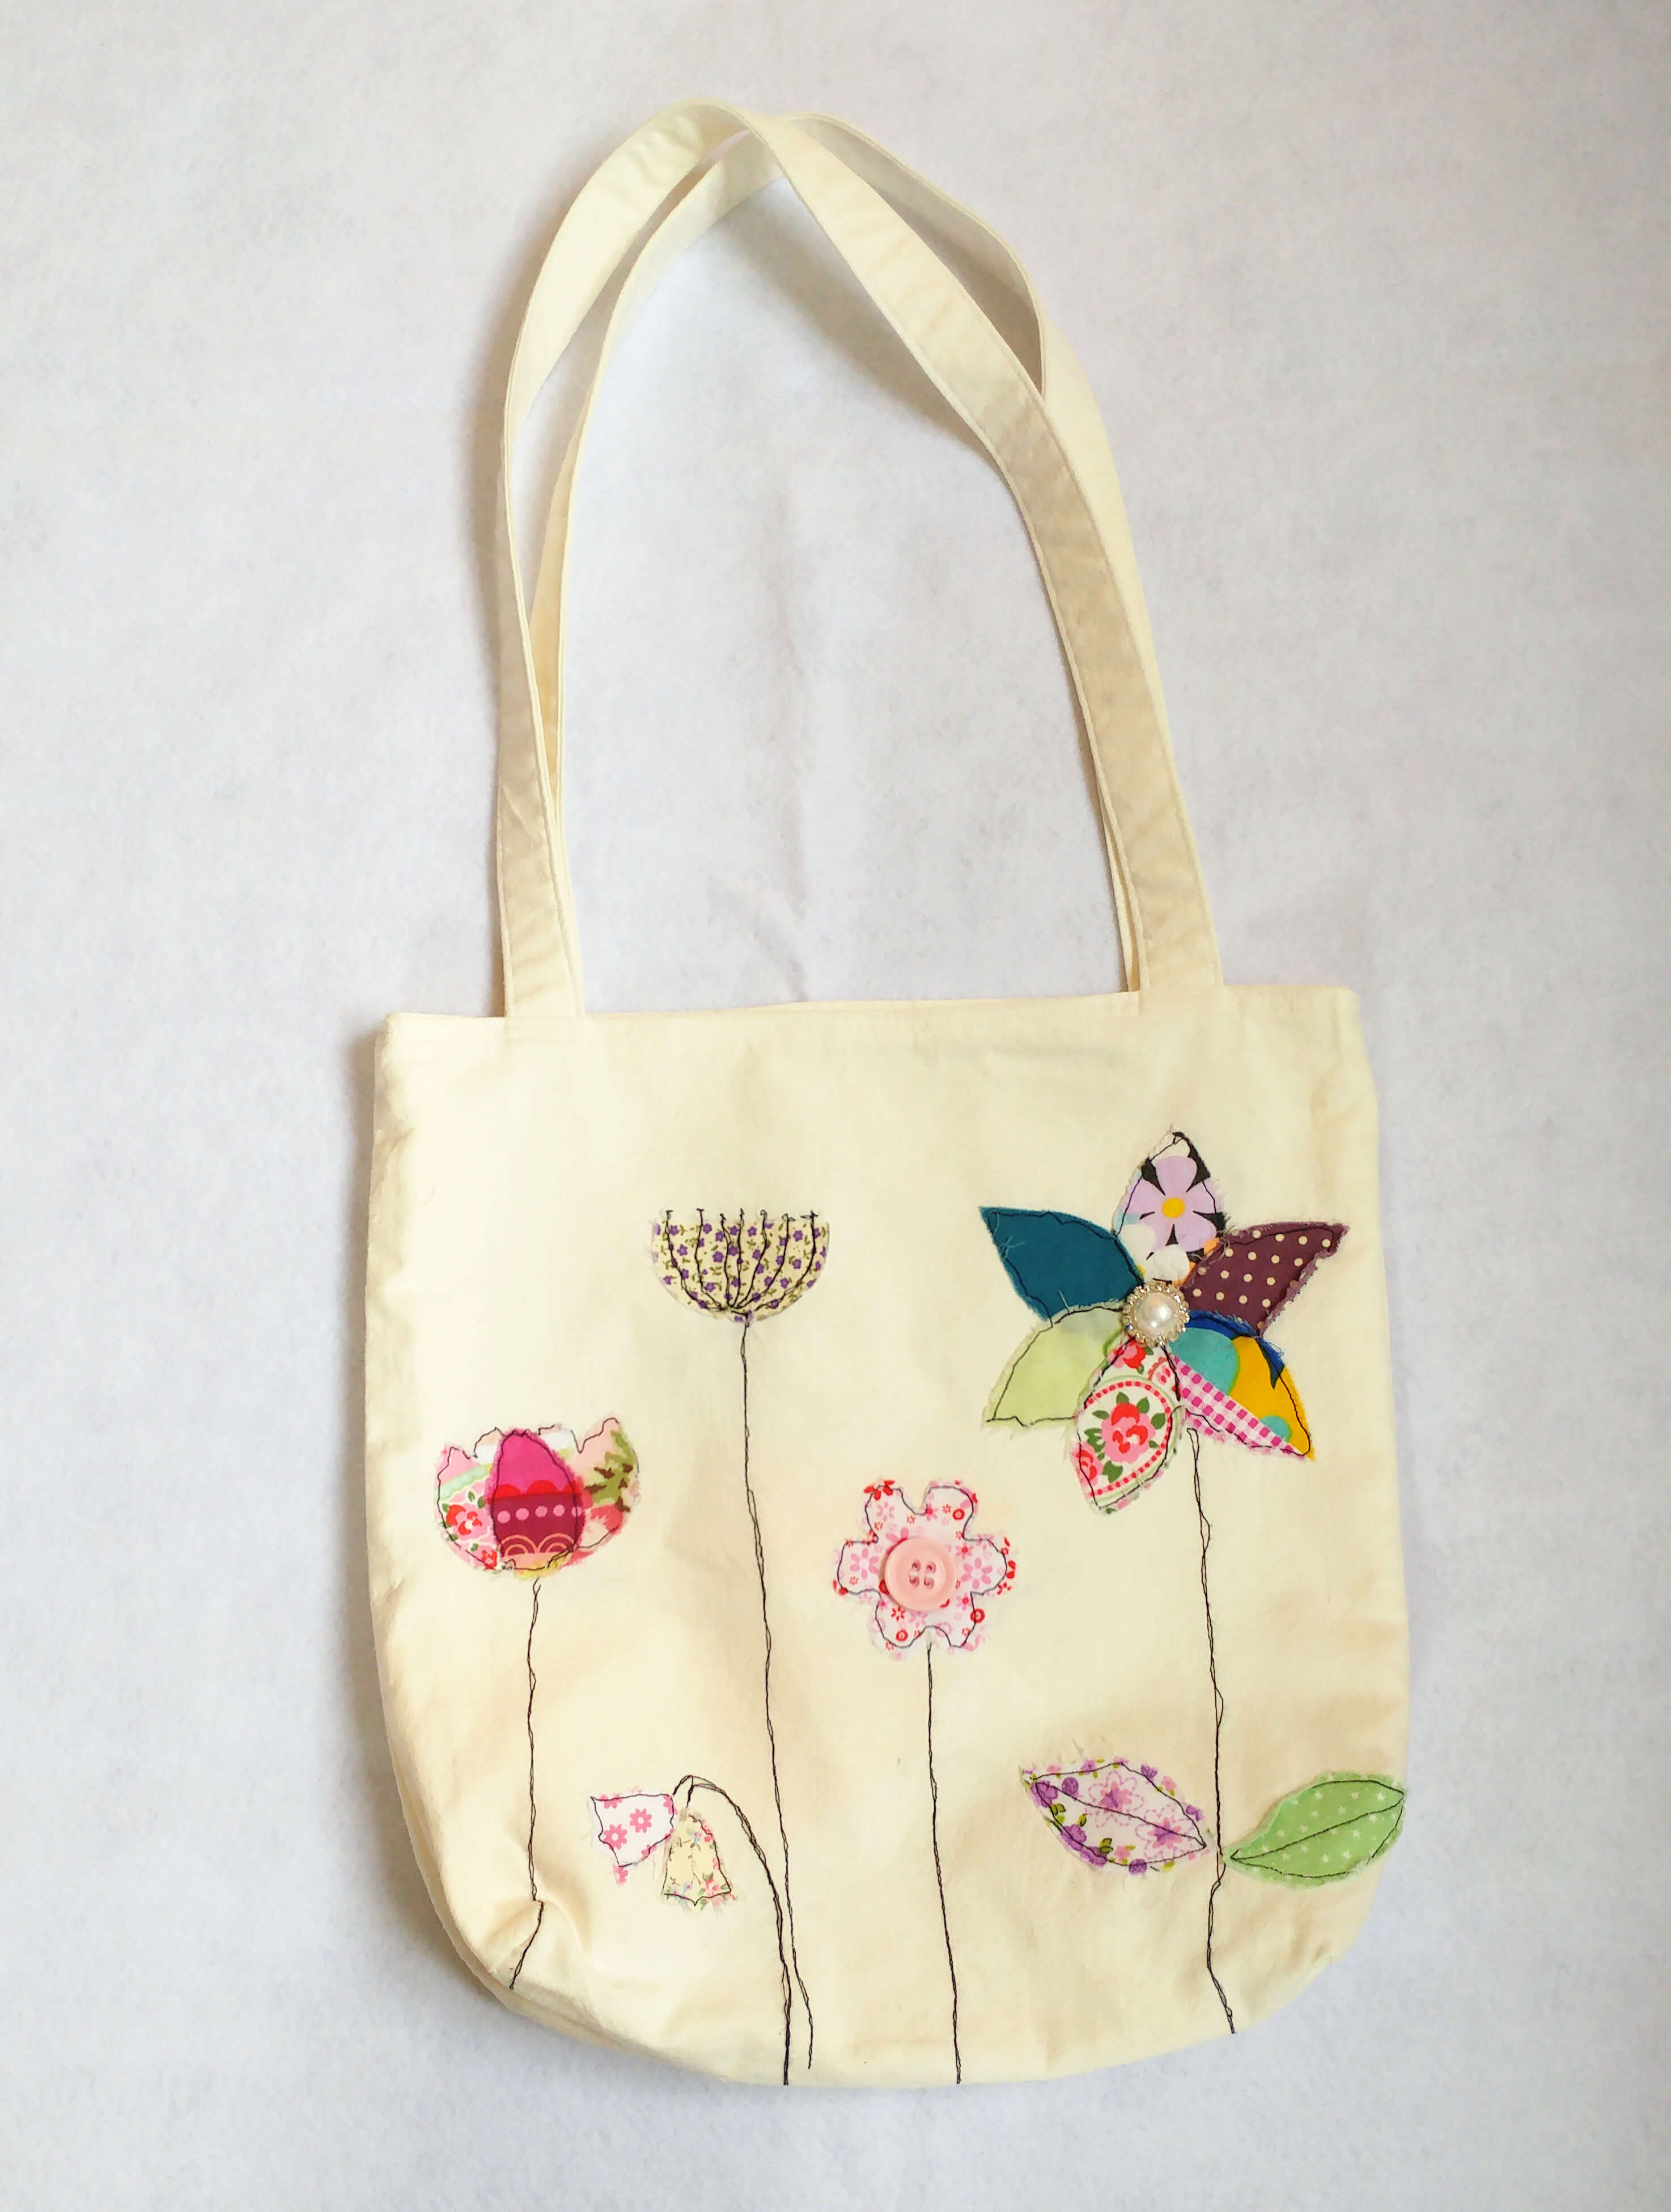 a4edcd3565 Busy Lizzi 39s Thinks You Should Design Your Own Tote Bag